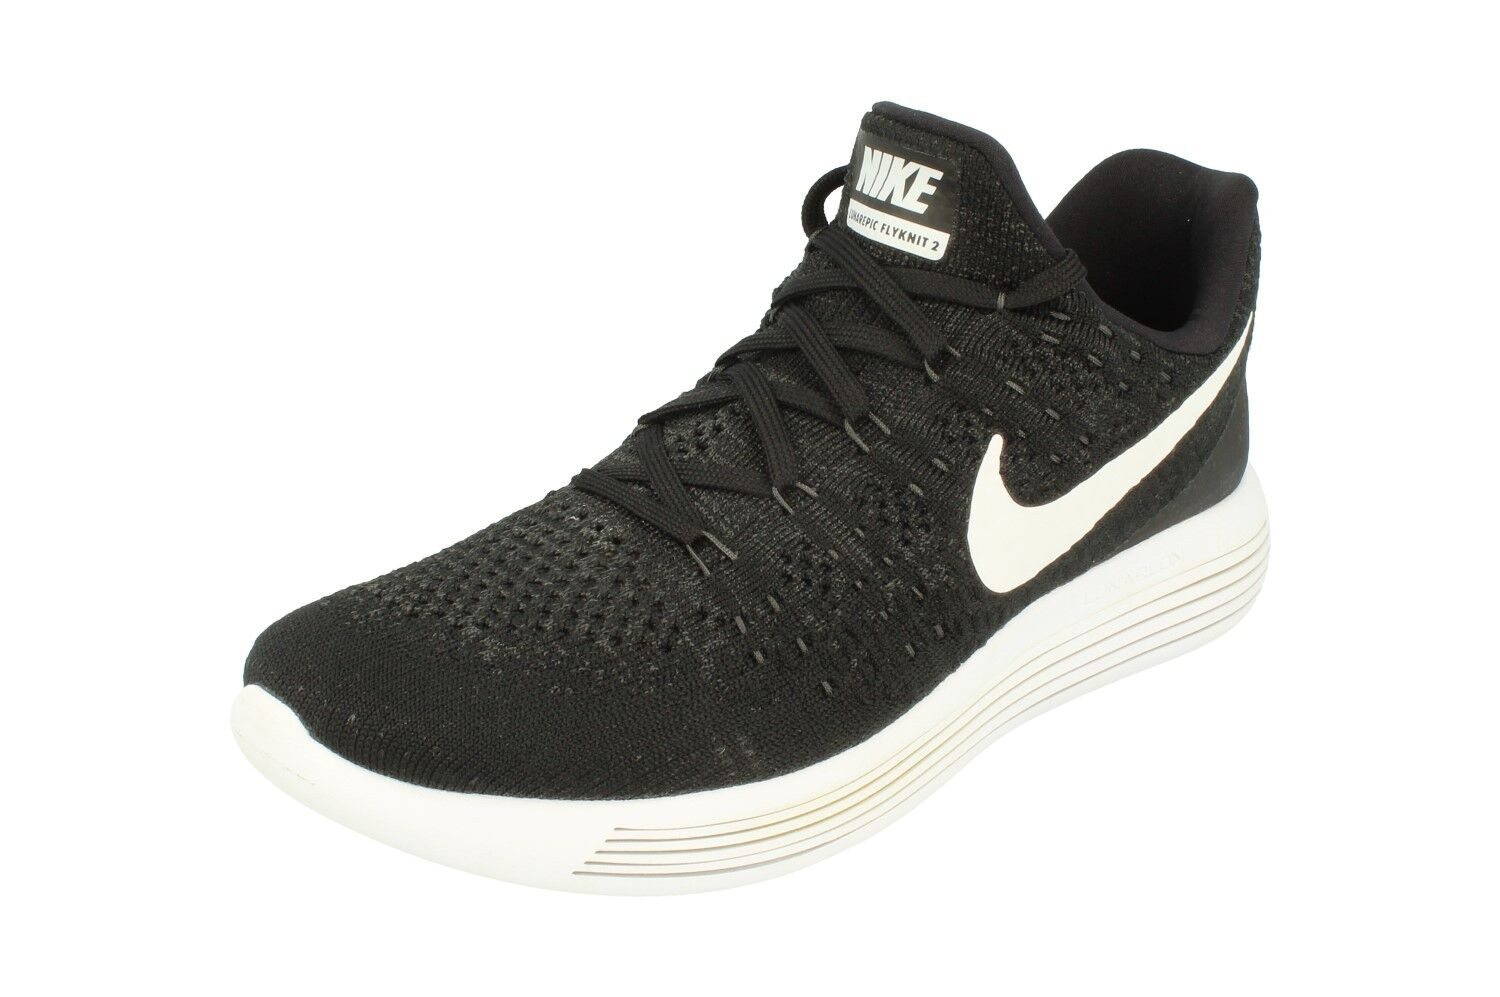 Nike Lunarepic Low Flyknit 2 Homme Running Trainers 86372018 Sneakers Chaussures 001